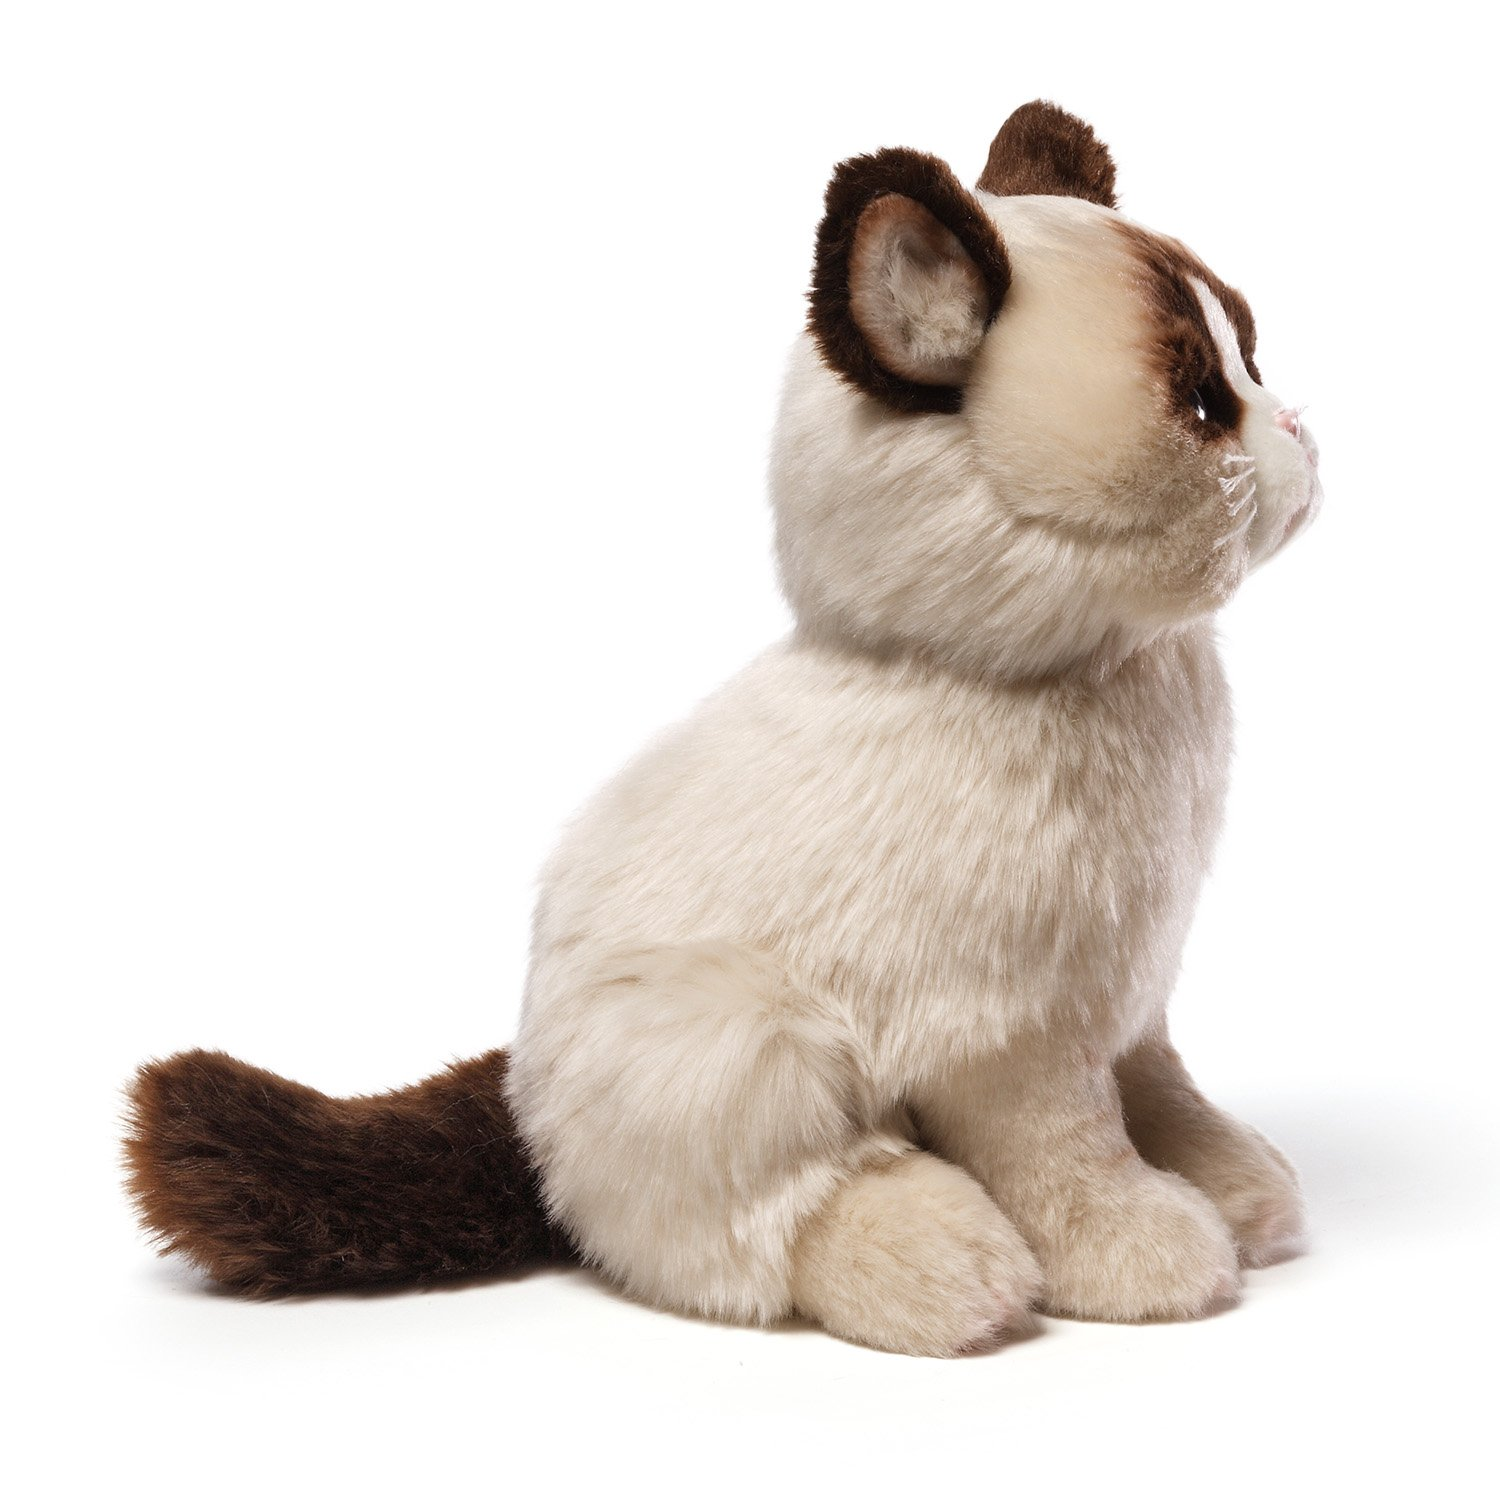 Amazoncom Gund Grumpy Cat Plush Stuffed Animal Toy Toy Toys - Meet the japanese cat that might just be the grumpiest kitty ever